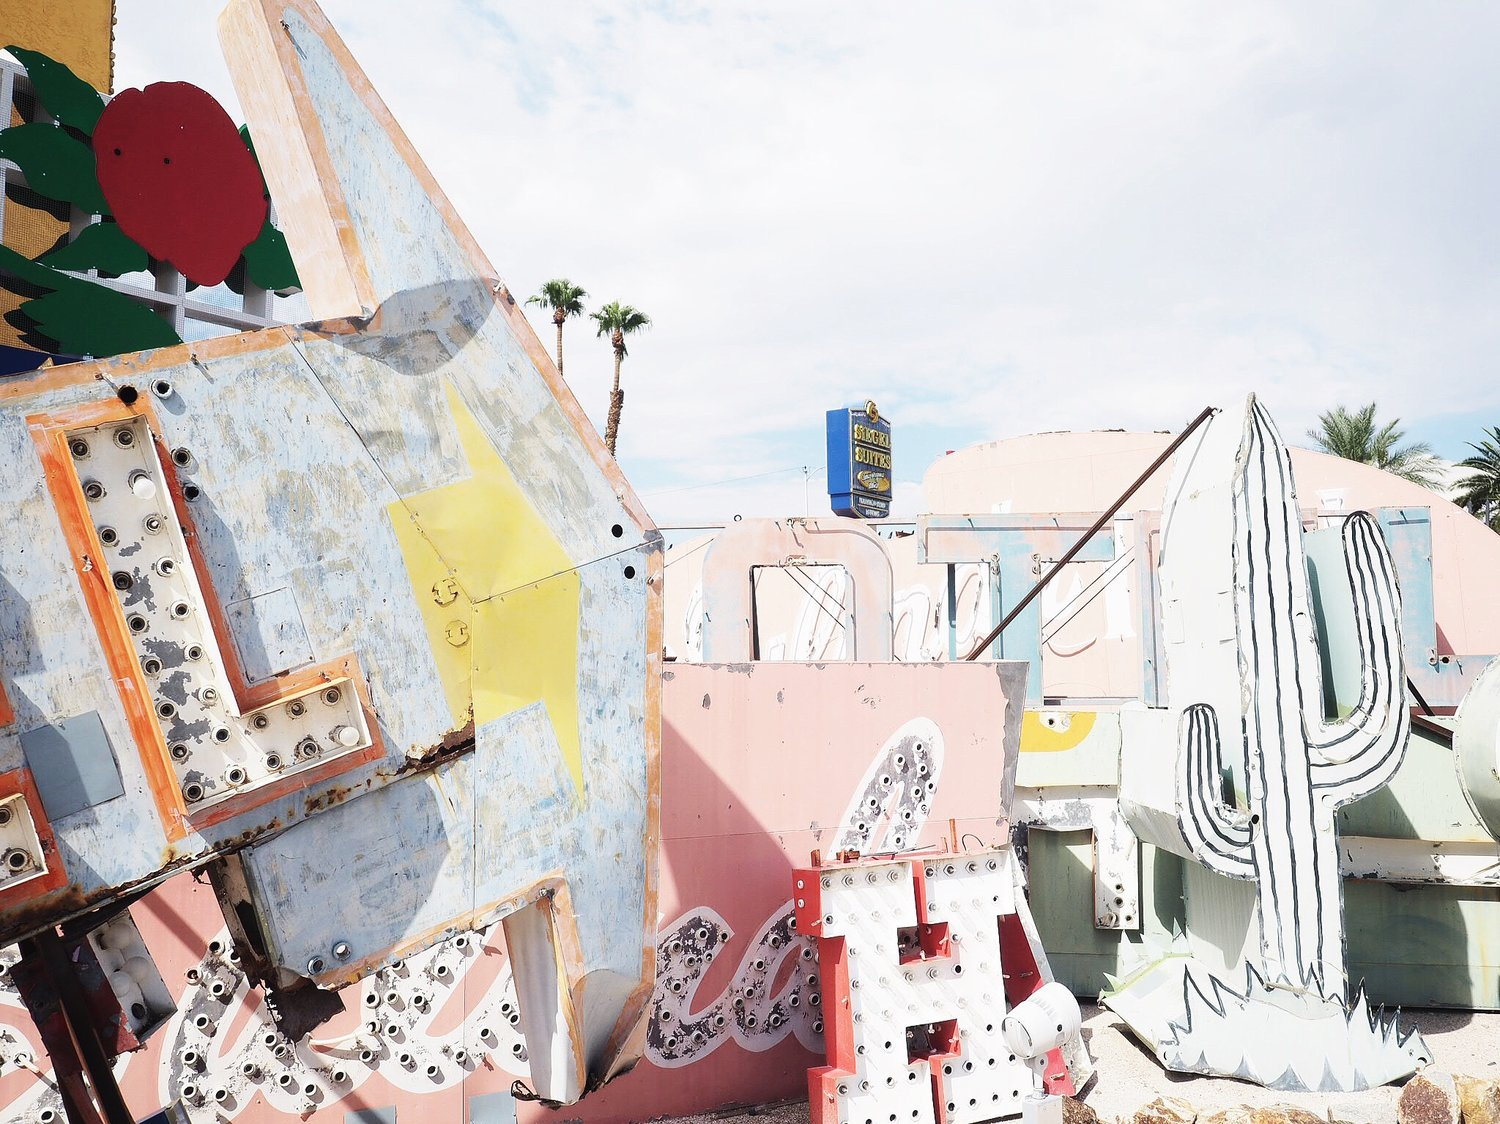 PHOTO DIARY: NEON BONEYARD OF LAS VEGAS -